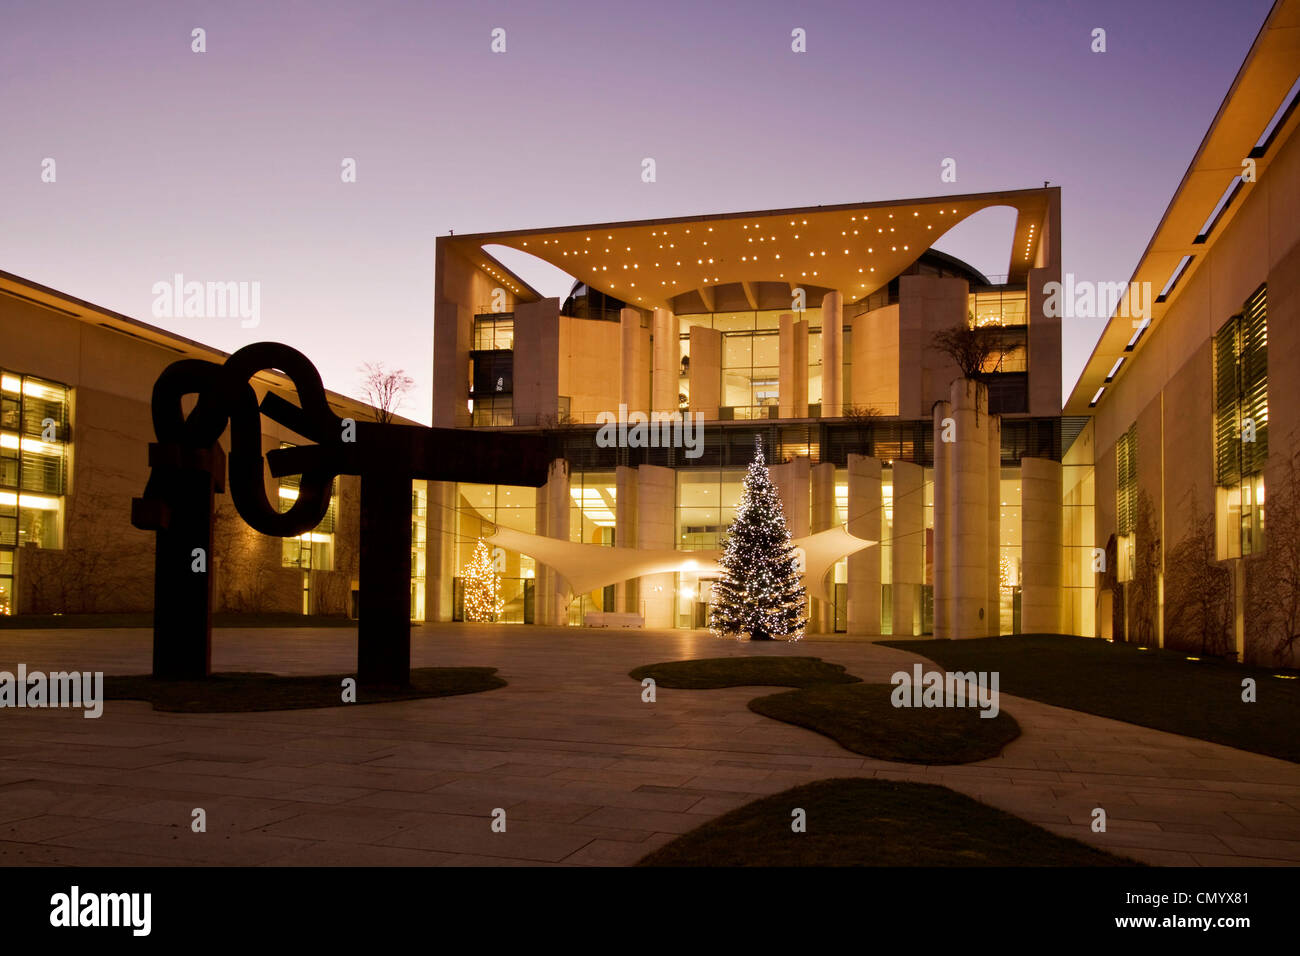 Chancellor office with Christmas treeat twilight, architect Axel Schultes, sculpture by Eduardo Chillida, Berlin, - Stock Image